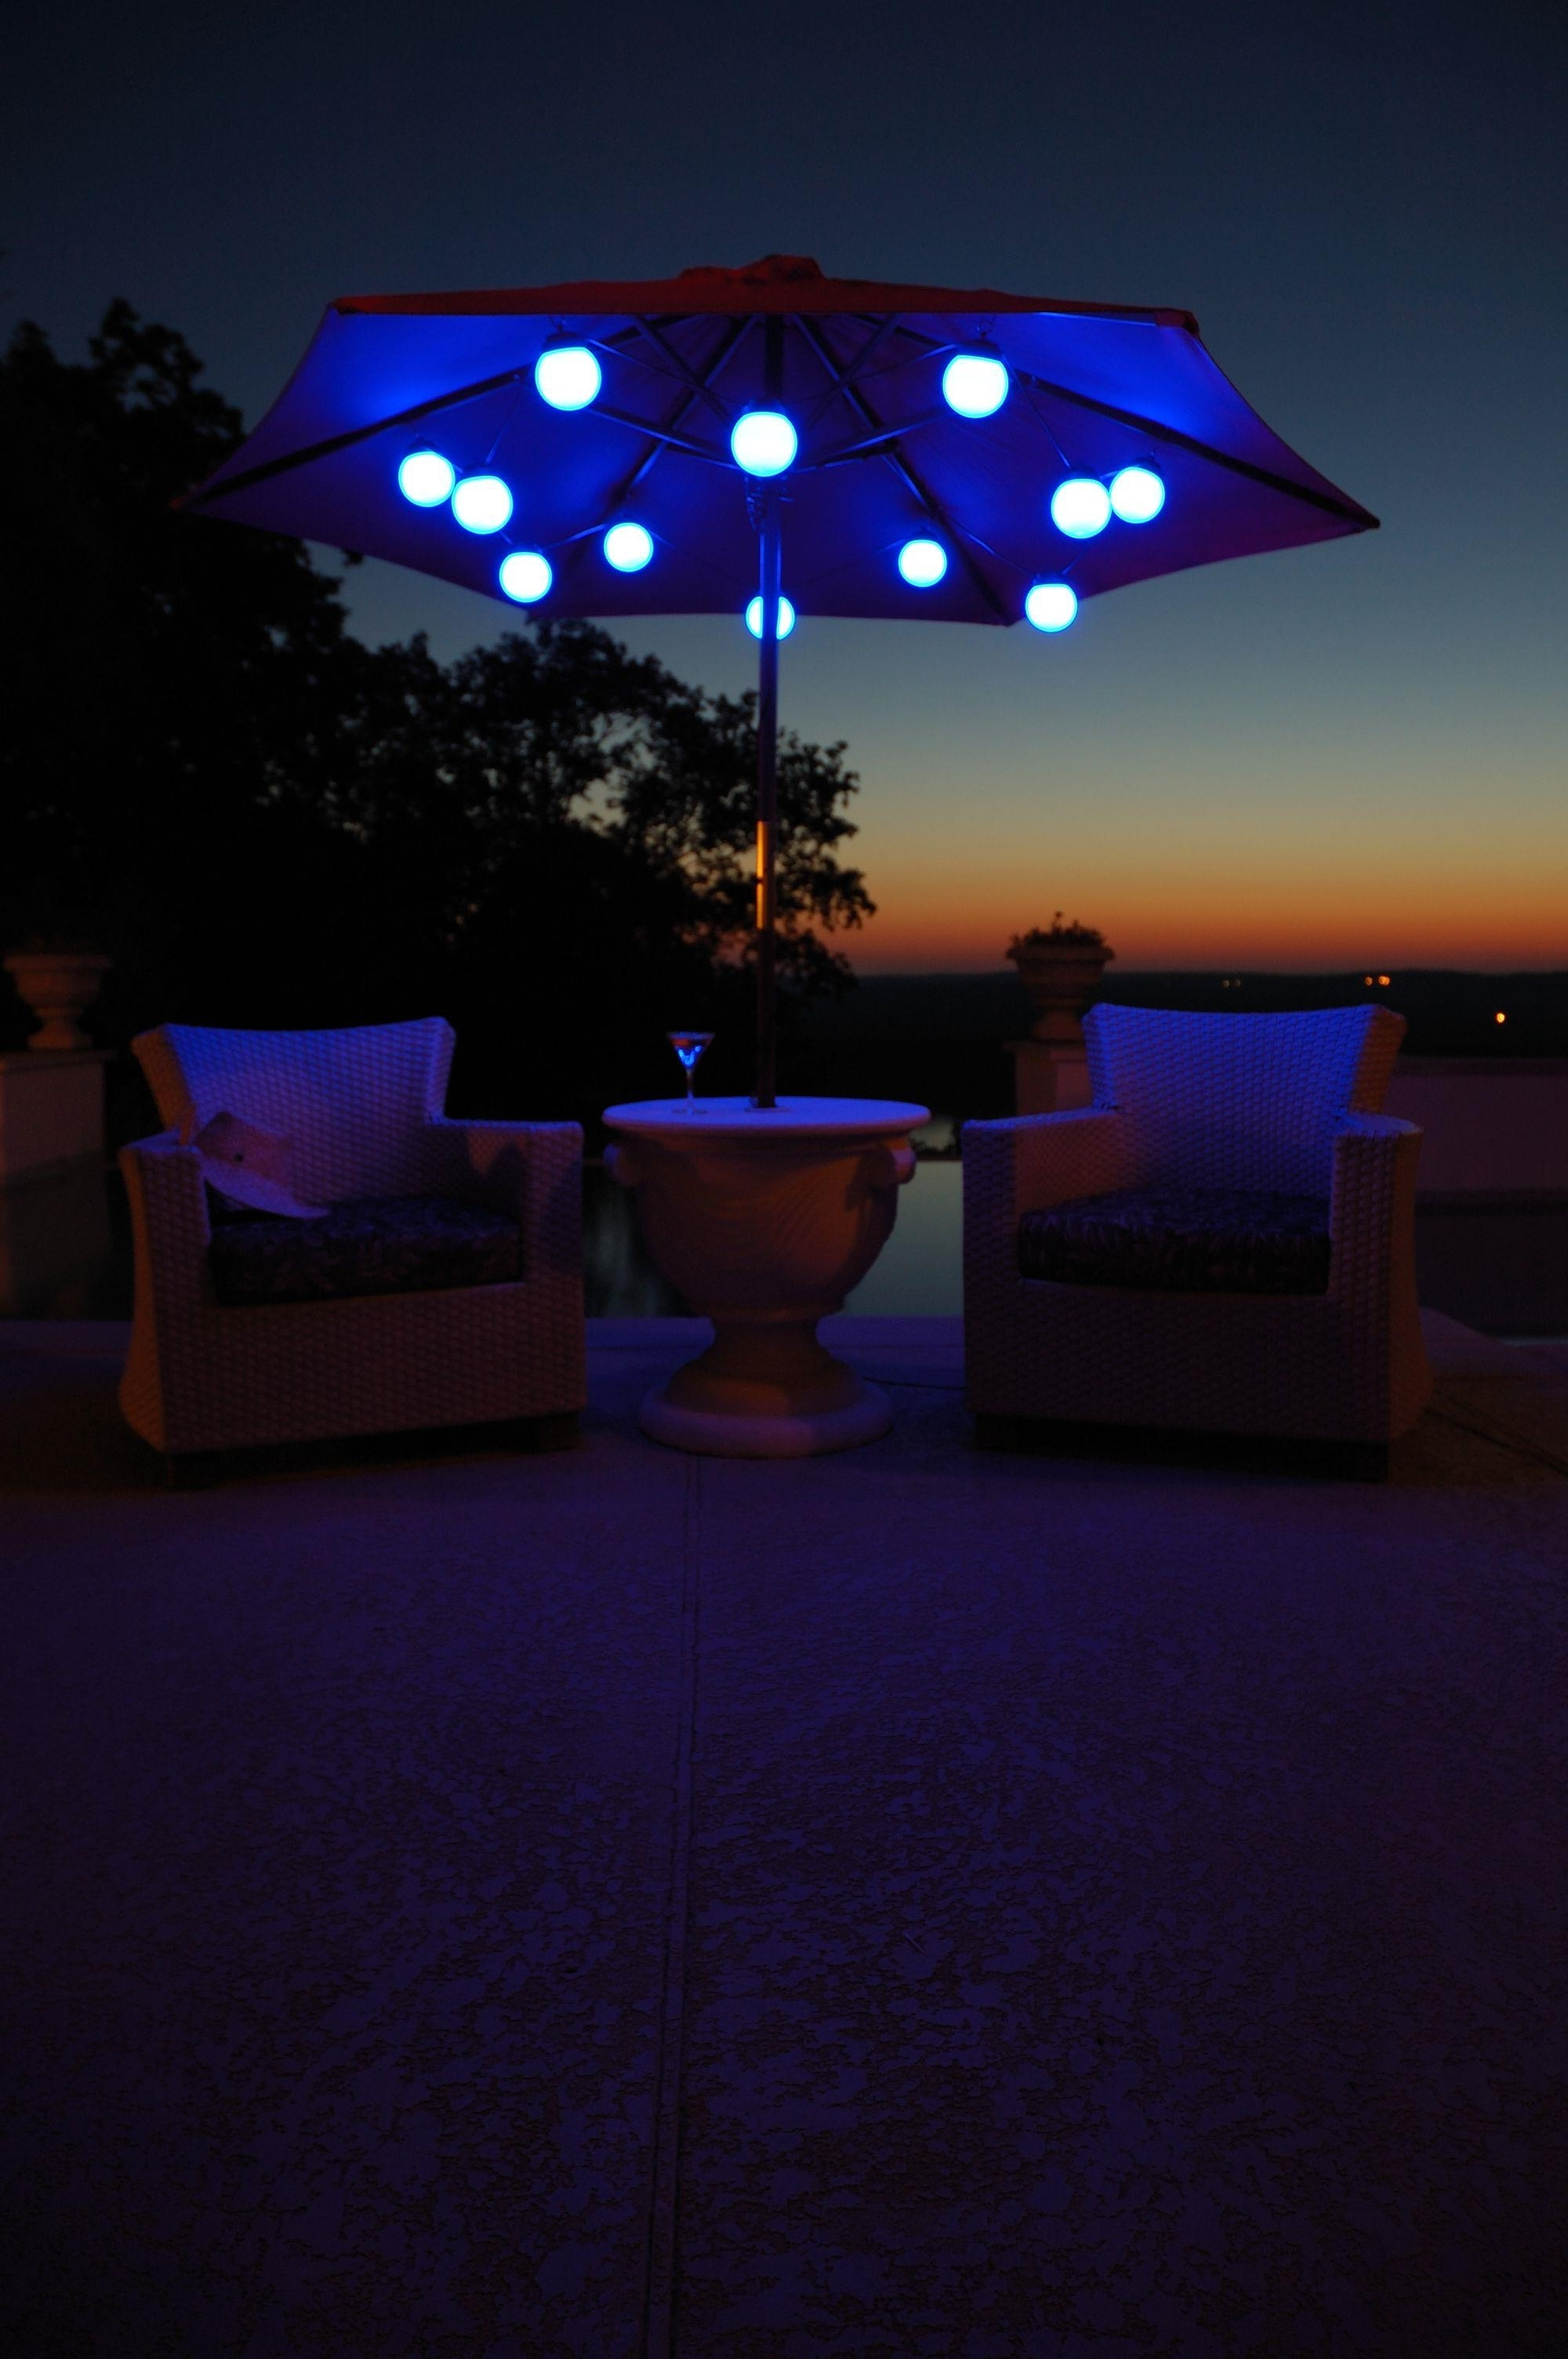 44 Patio Umbrella Light, 27 Ideas For Decorating Patio With Lighting Regarding Widely Used Patio Umbrellas With Solar Led Lights (Gallery 16 of 20)